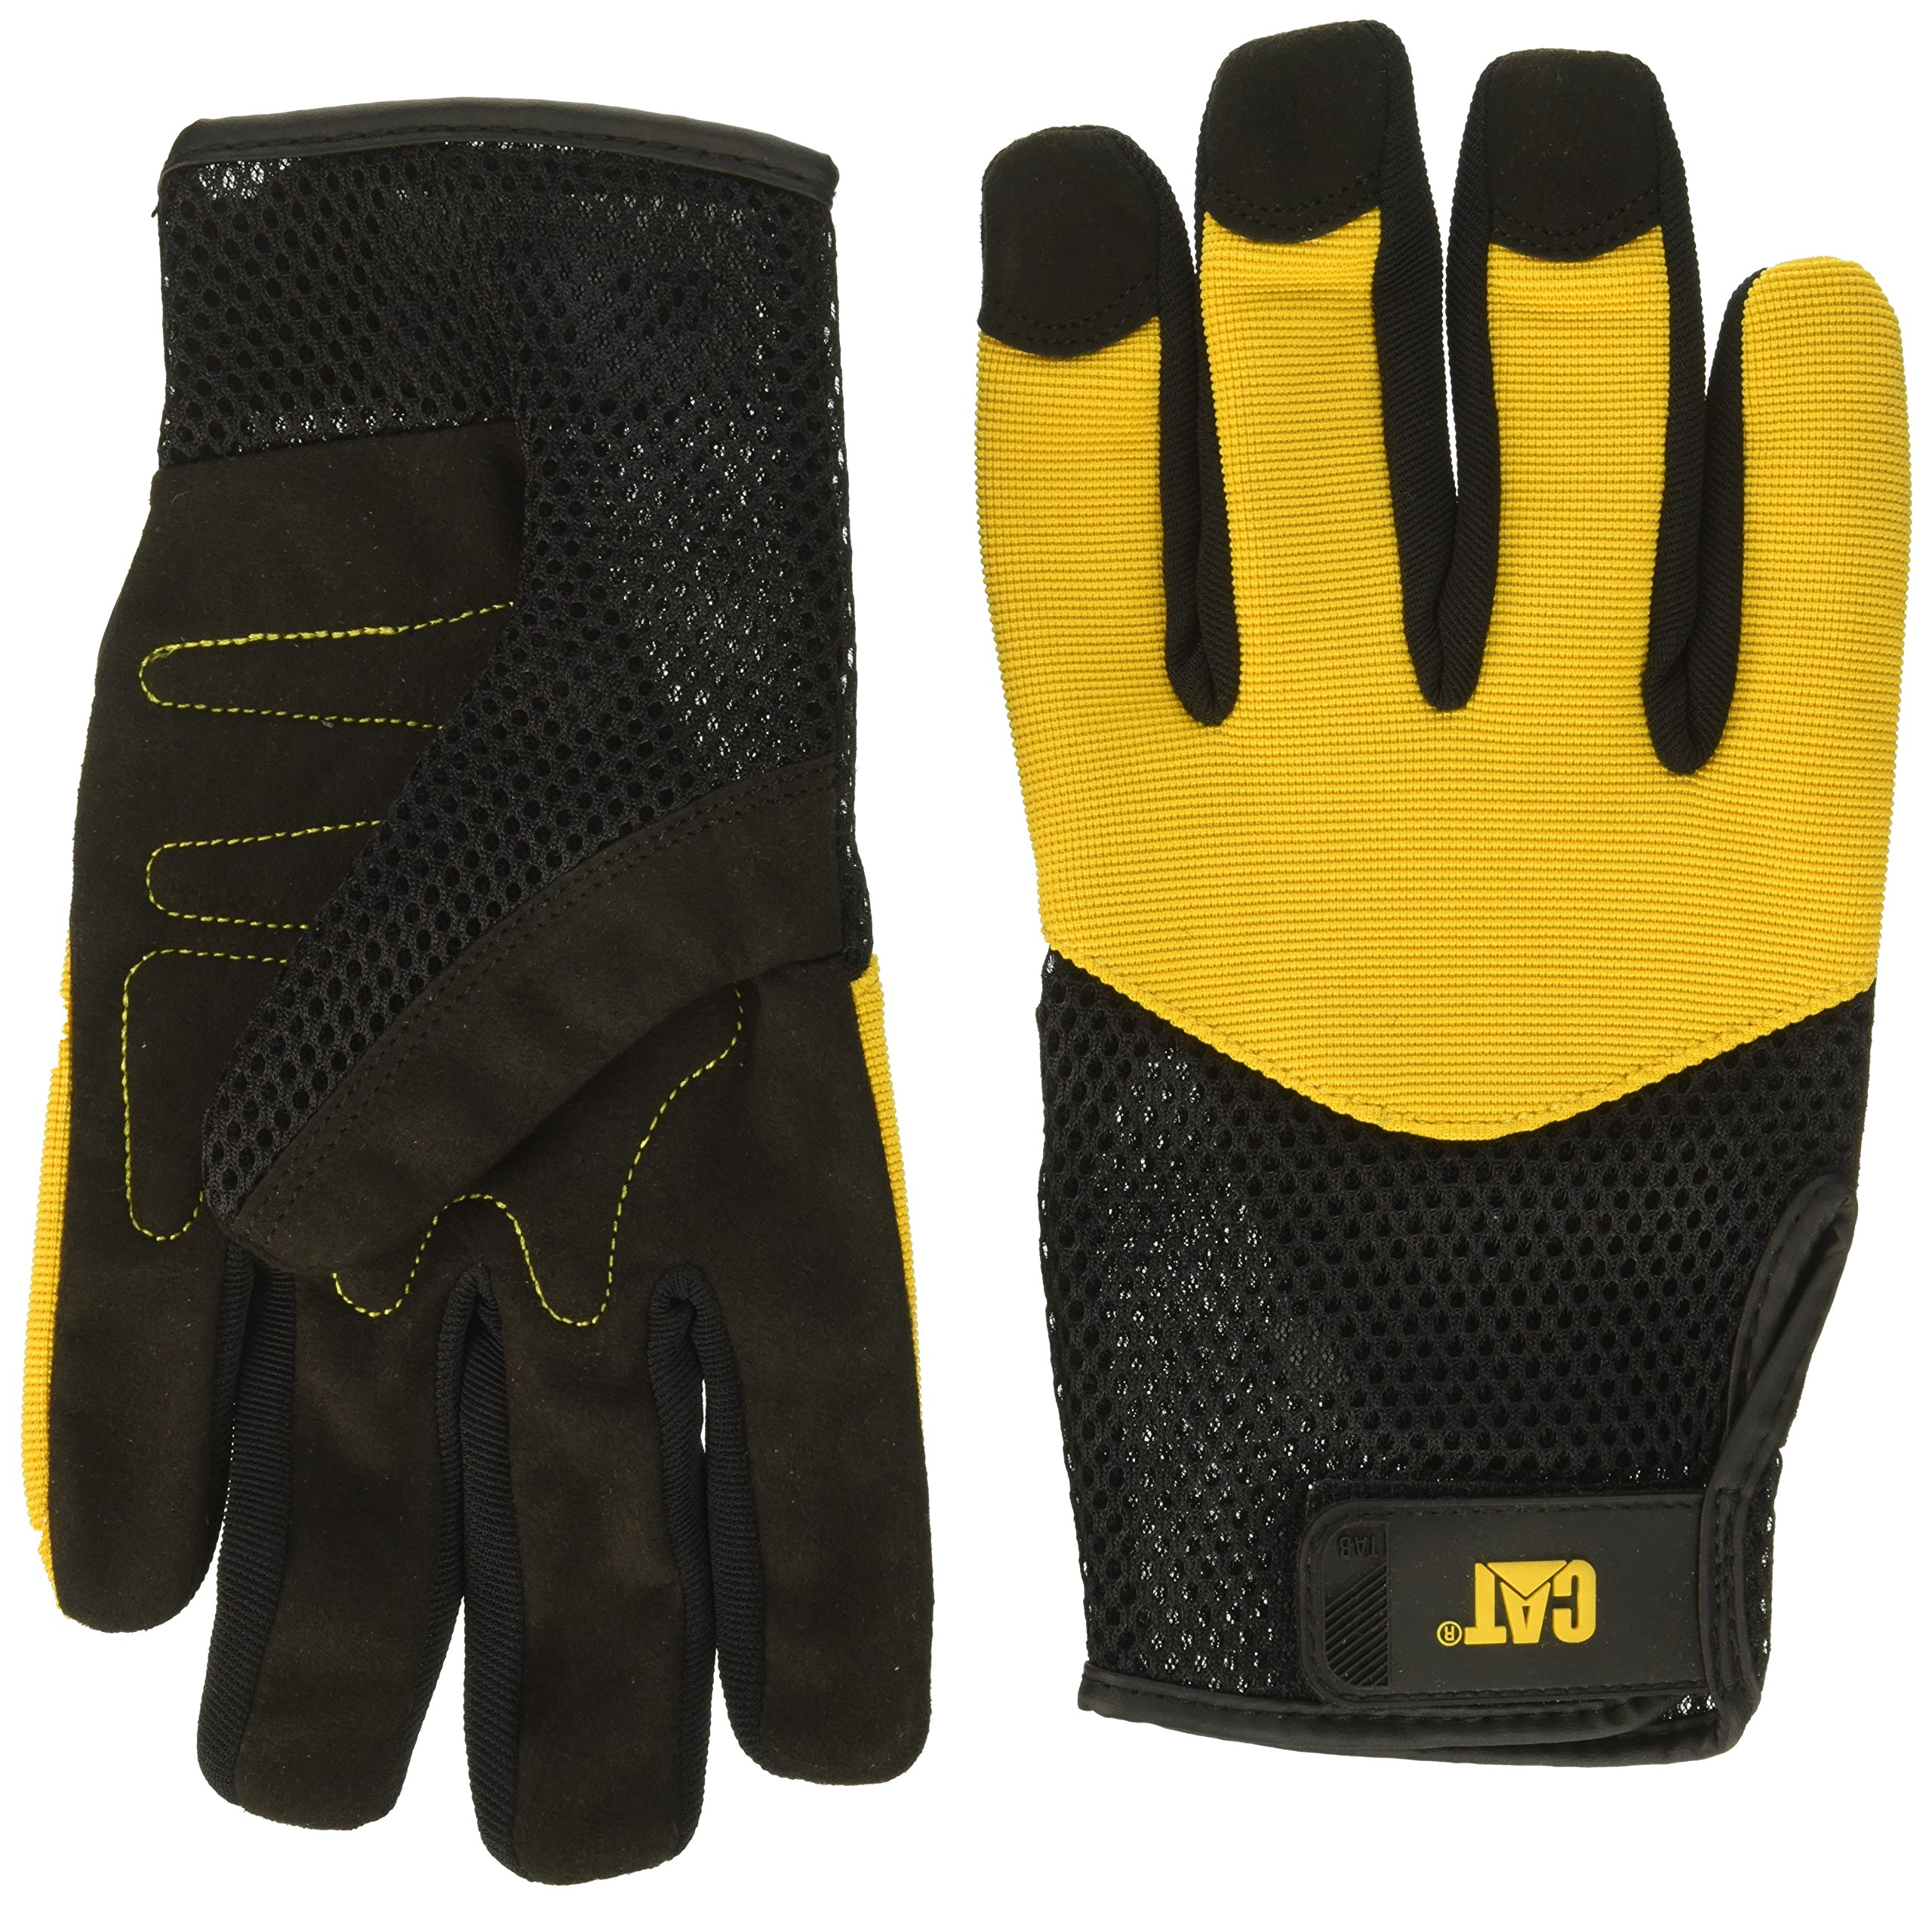 Caterpillar CAT012215J Padded Palm Utility Glove with a Mesh Spandex Back. Black Palm and Yellow Back. Size Jumbo.